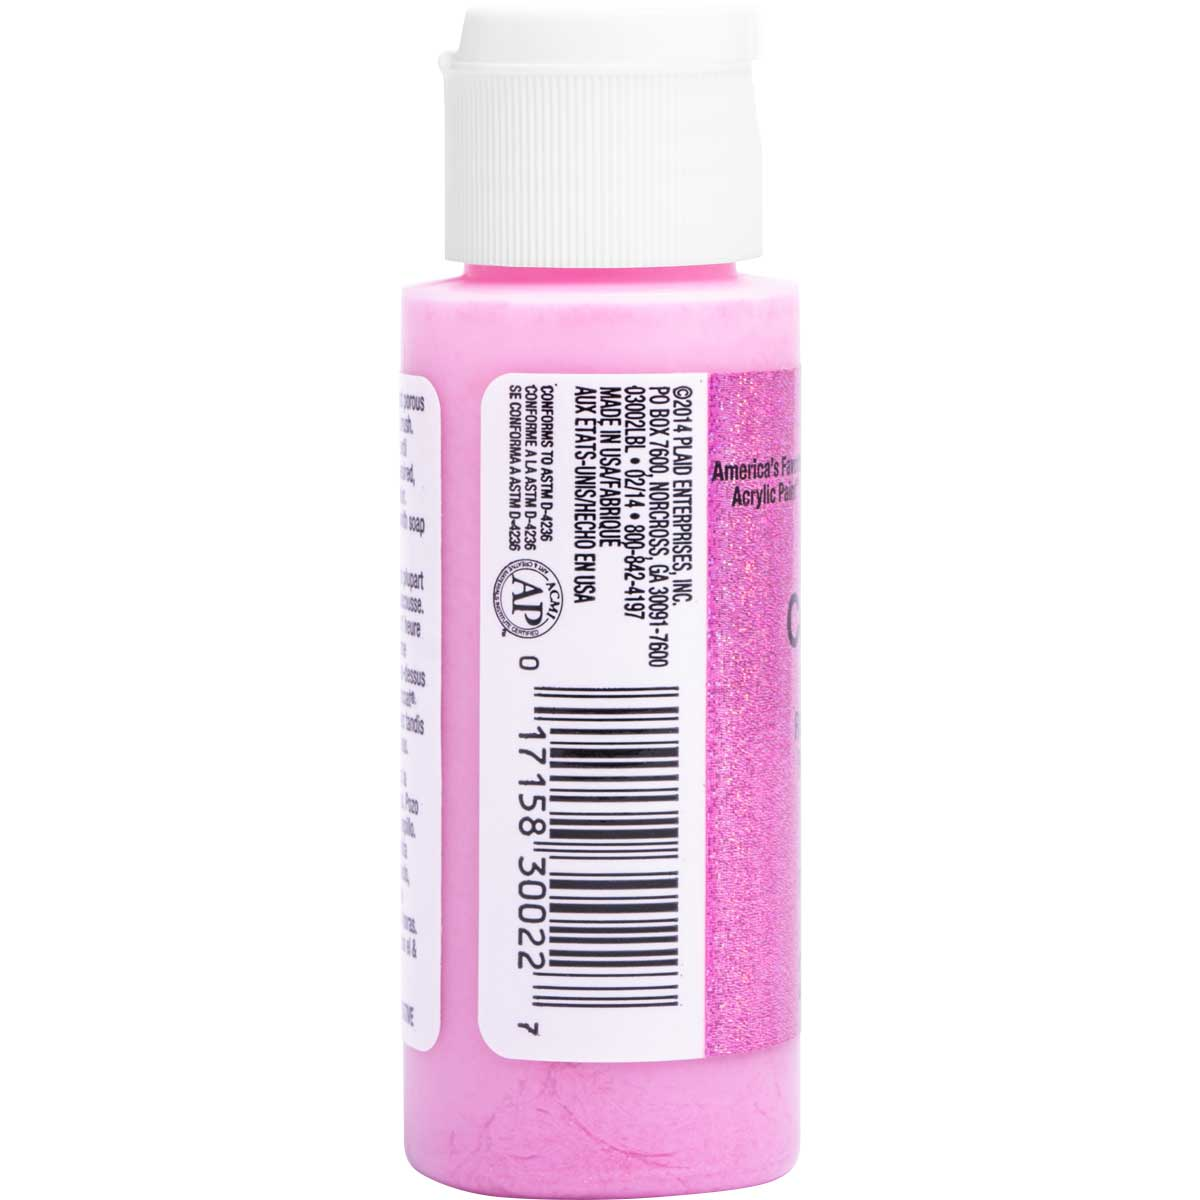 Delta Ceramcoat ® Acrylic Paint - Glitter Pink, 2 oz.